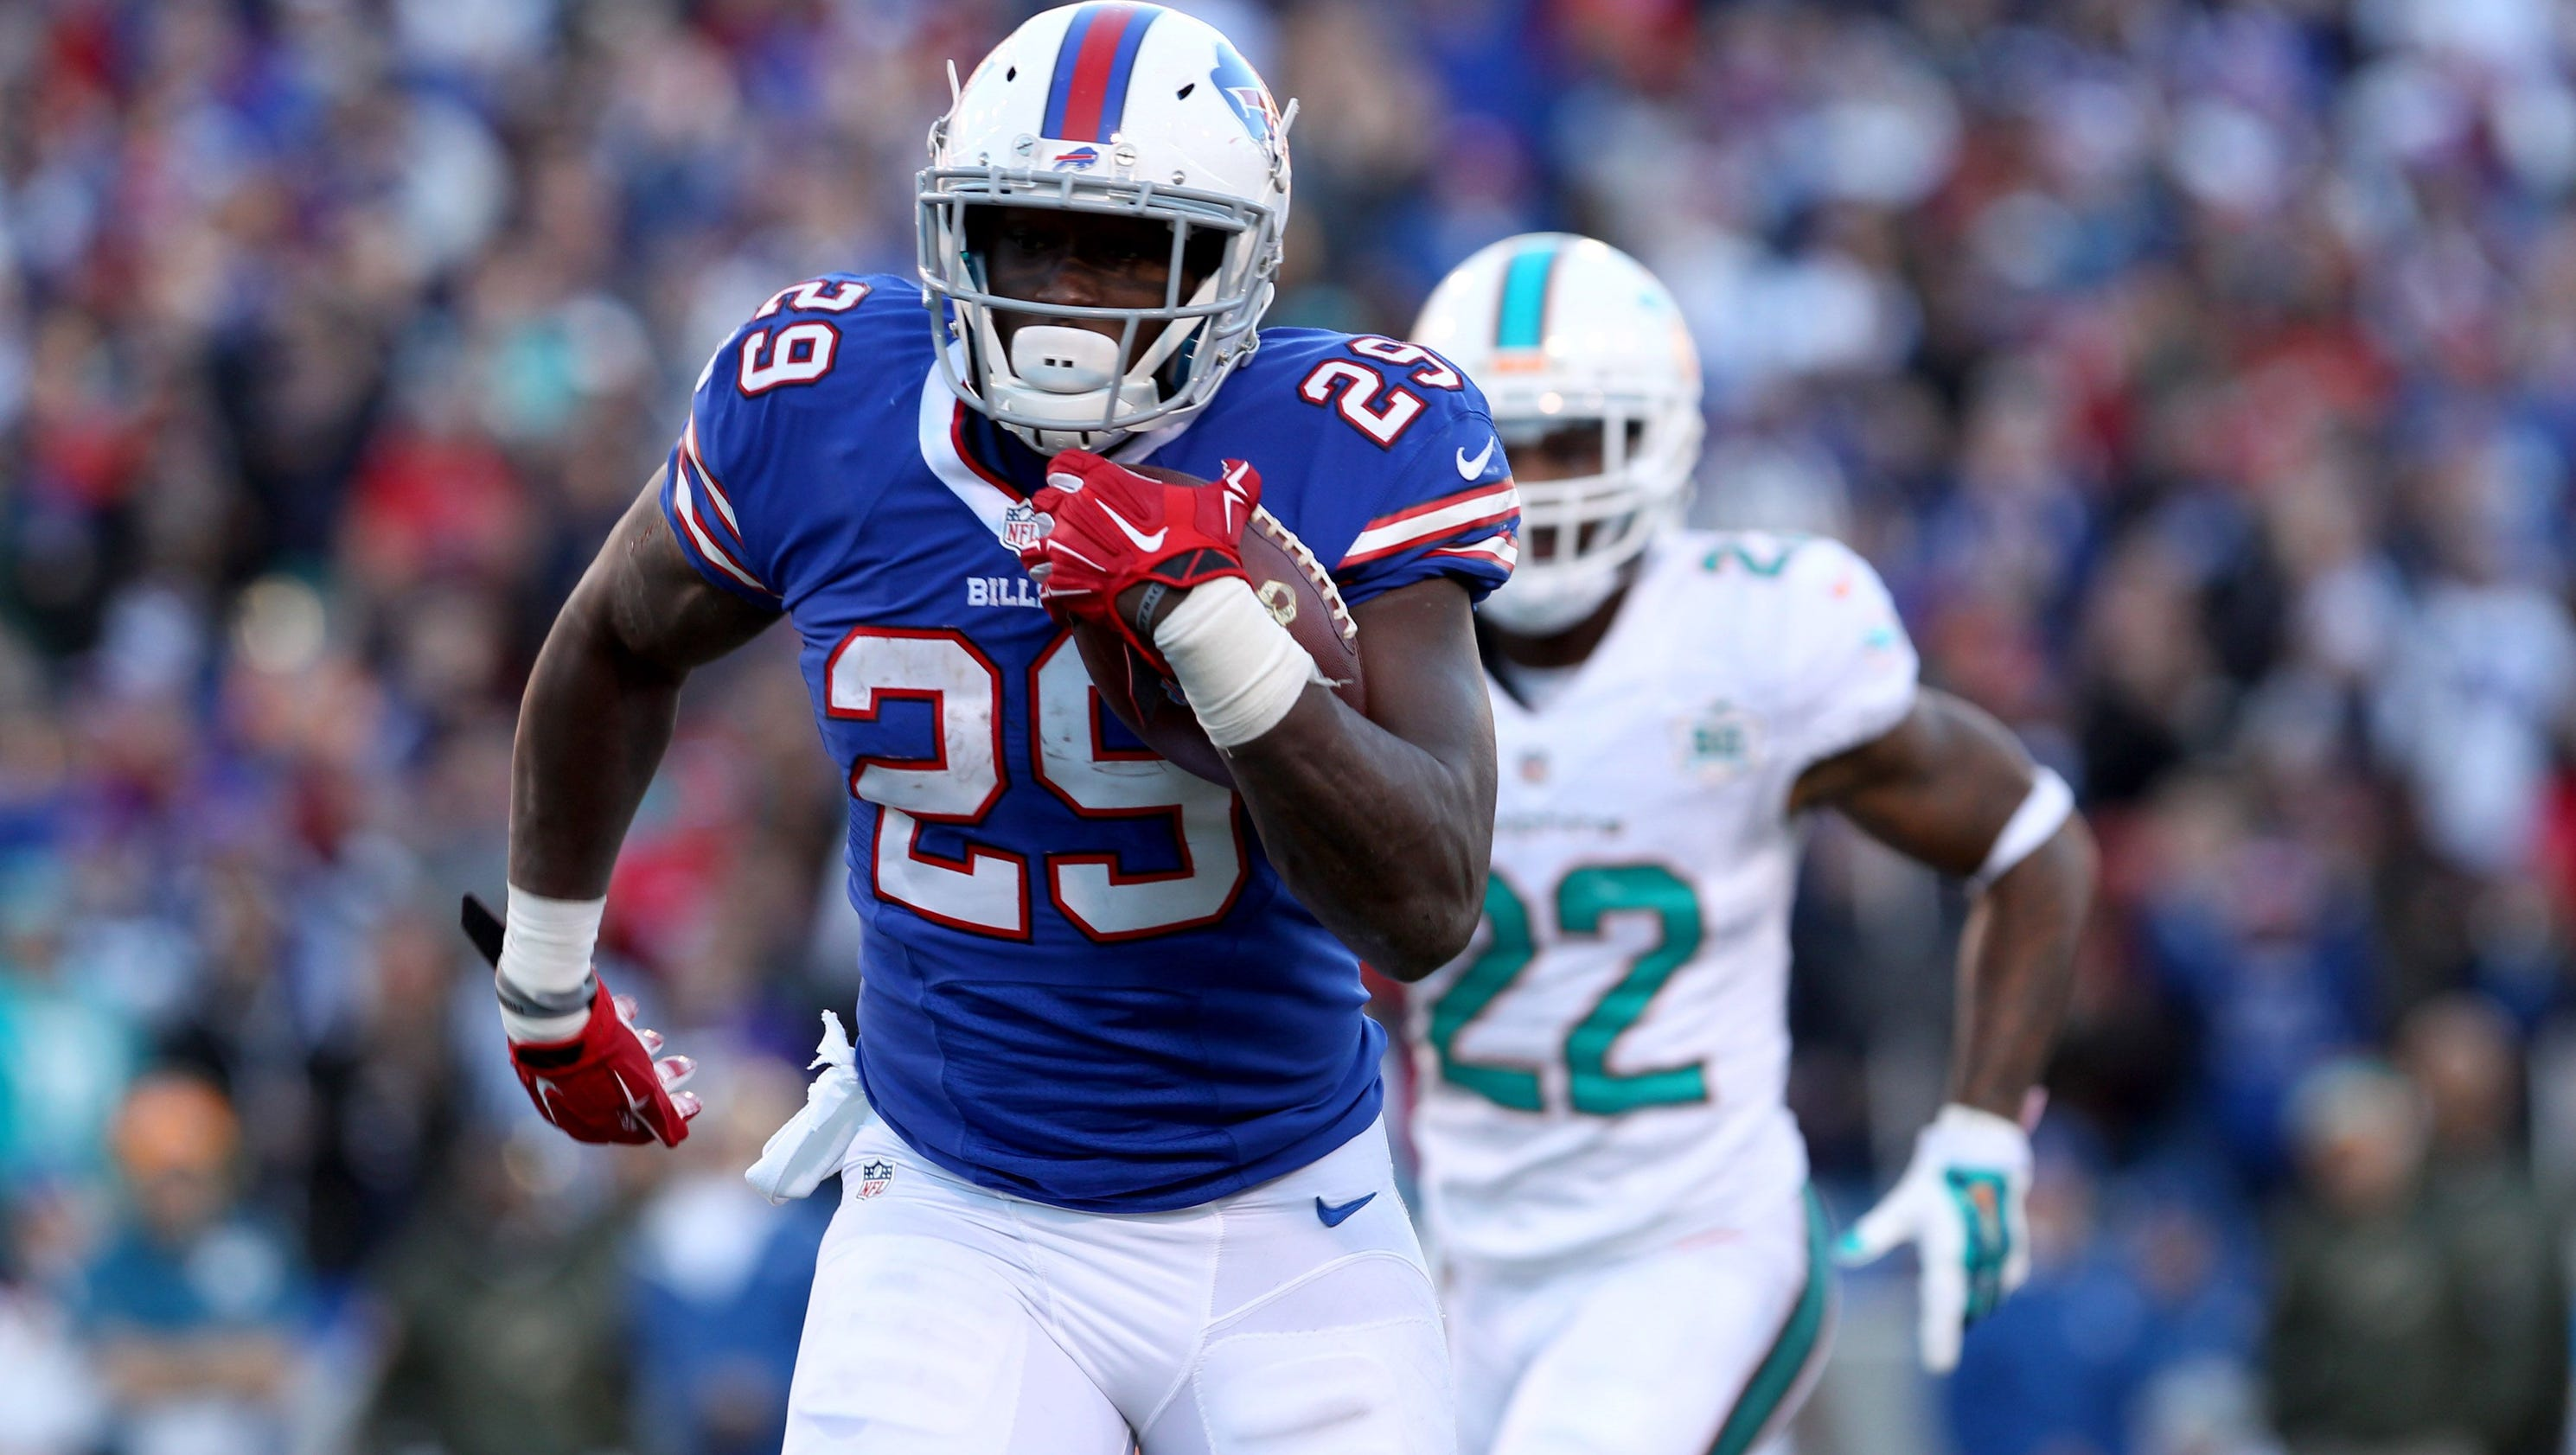 Report: Free agent RB Karlos Williams suspended at least one year